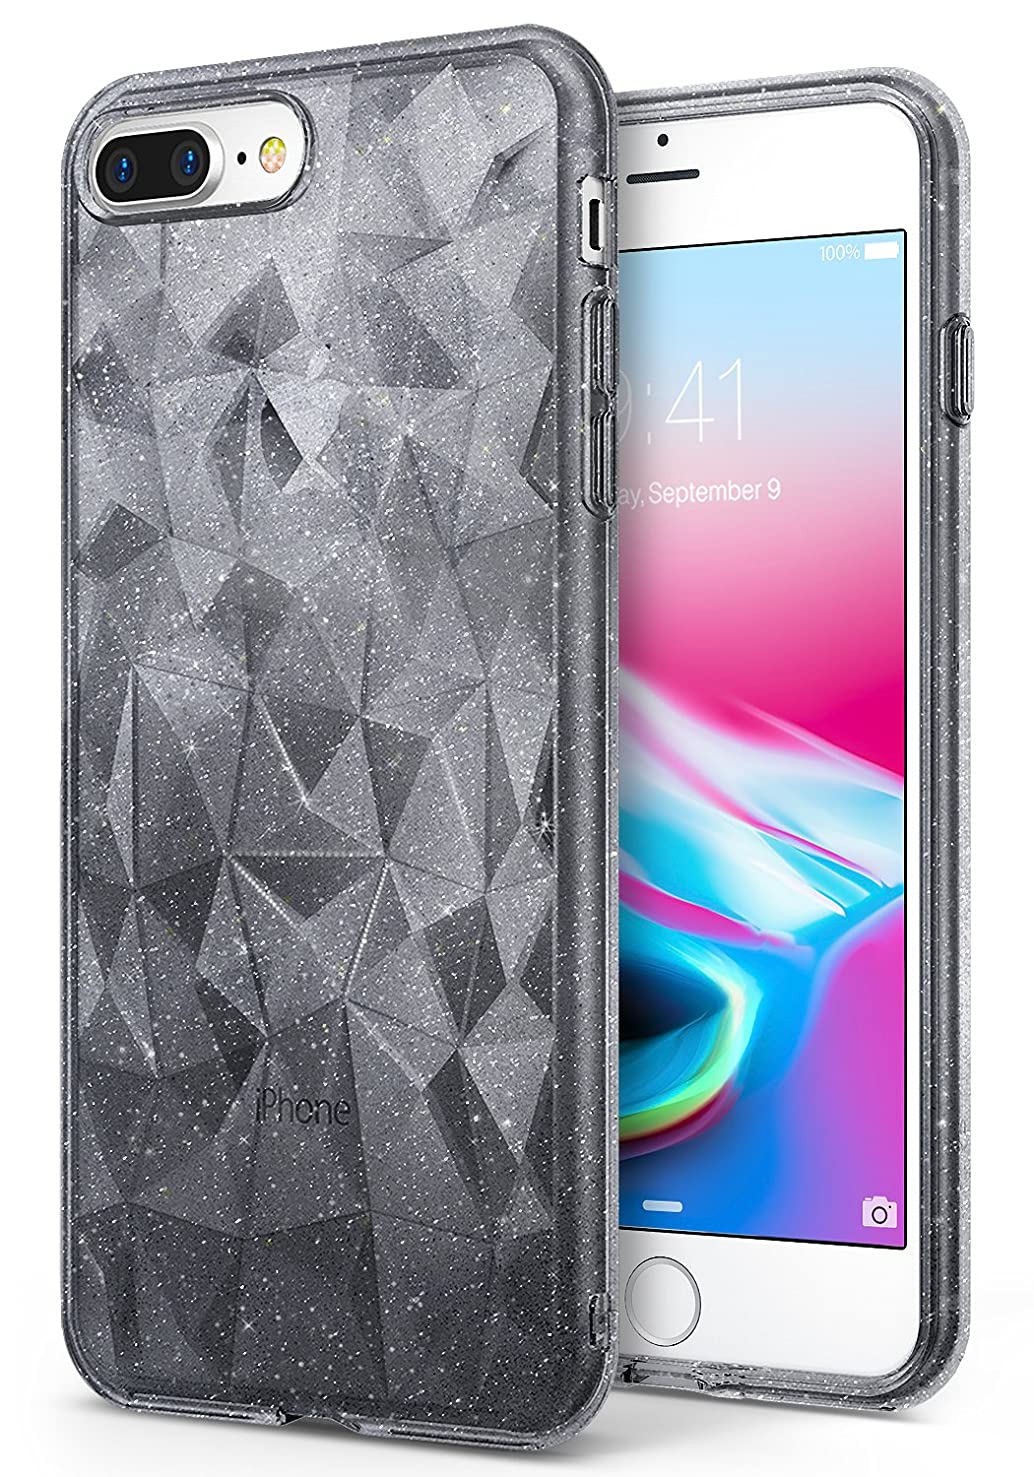 Ringke AIR Prism Compatible with iPhone 8 Plus Case, Sparkle 3D Contemporary Design Chic Ultra Lightweight Geometric Stylish Pattern Protective TPU Drop Resistant Cover - Glitter Gray